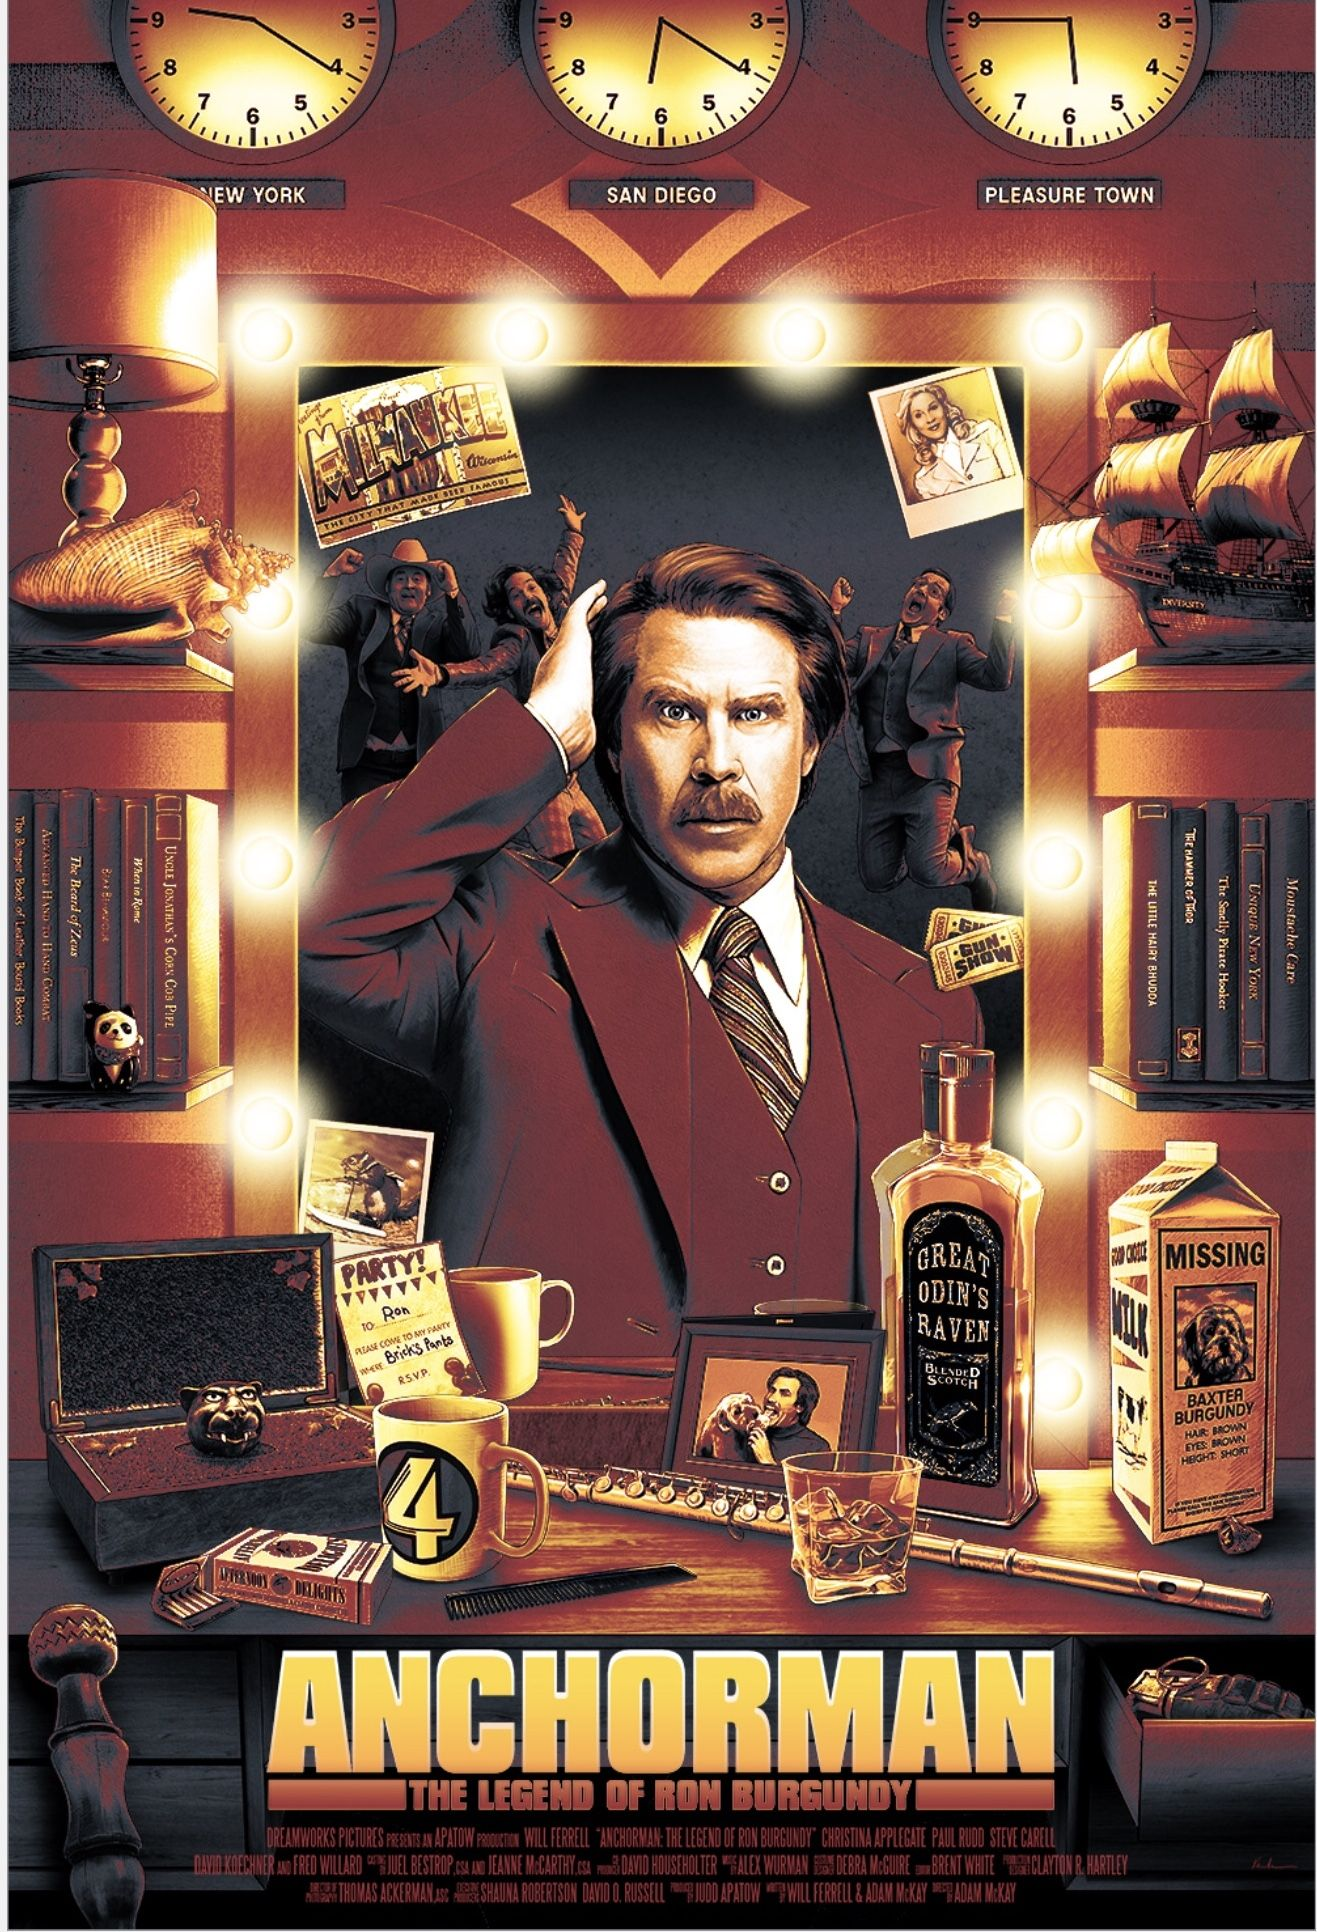 Pin By Nawrotowiec On Movie Posters Movie Posters Alternative Movie Posters Ron Burgundy